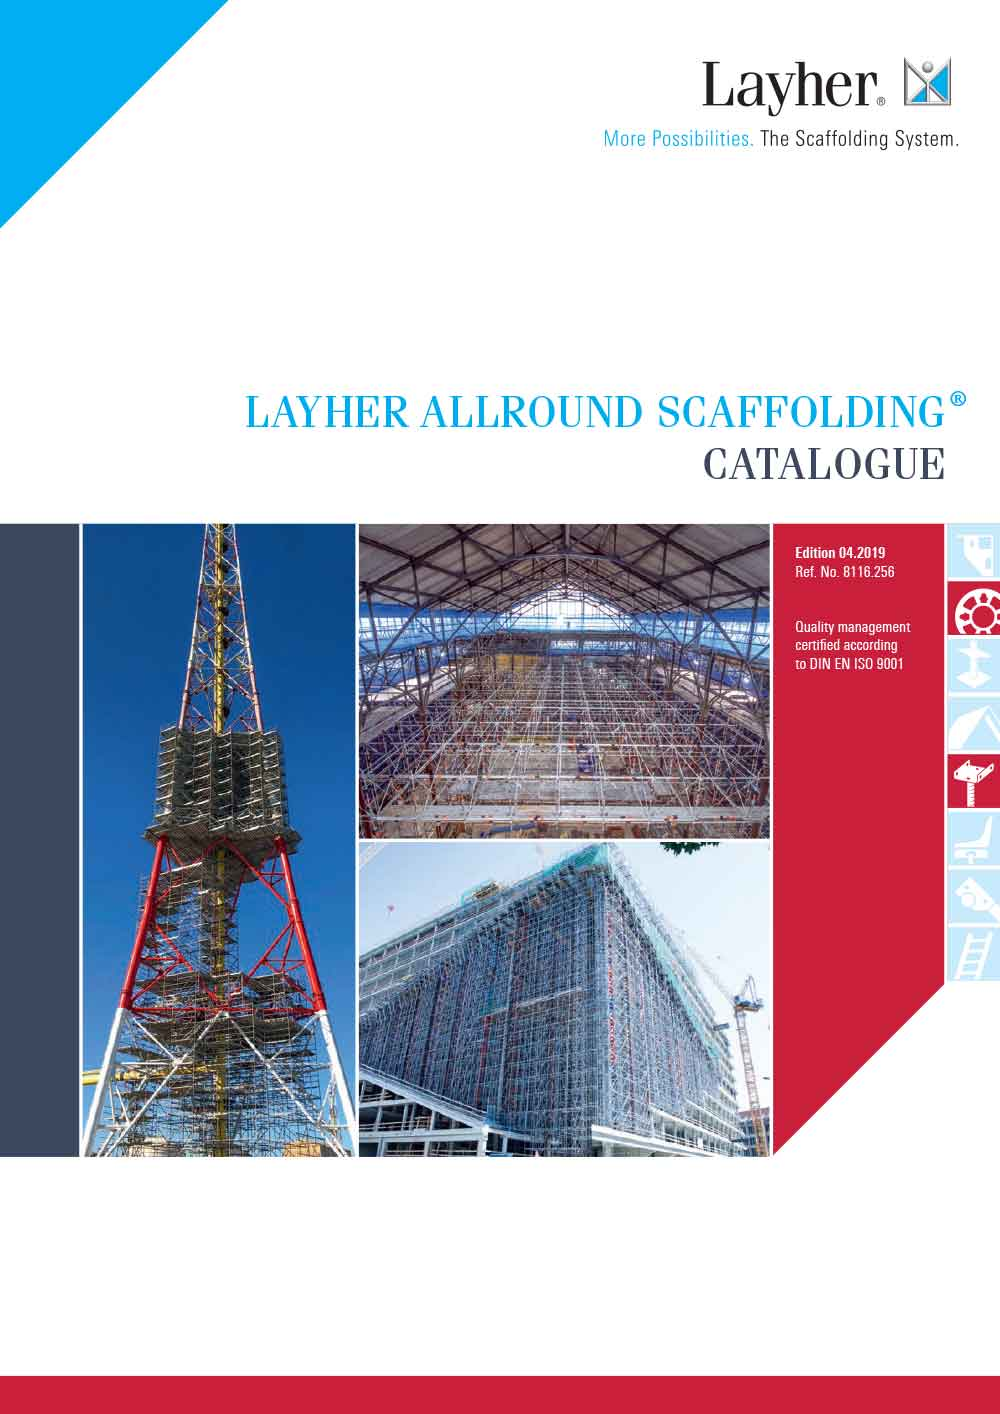 Layher Allround Scaffolding catalogue